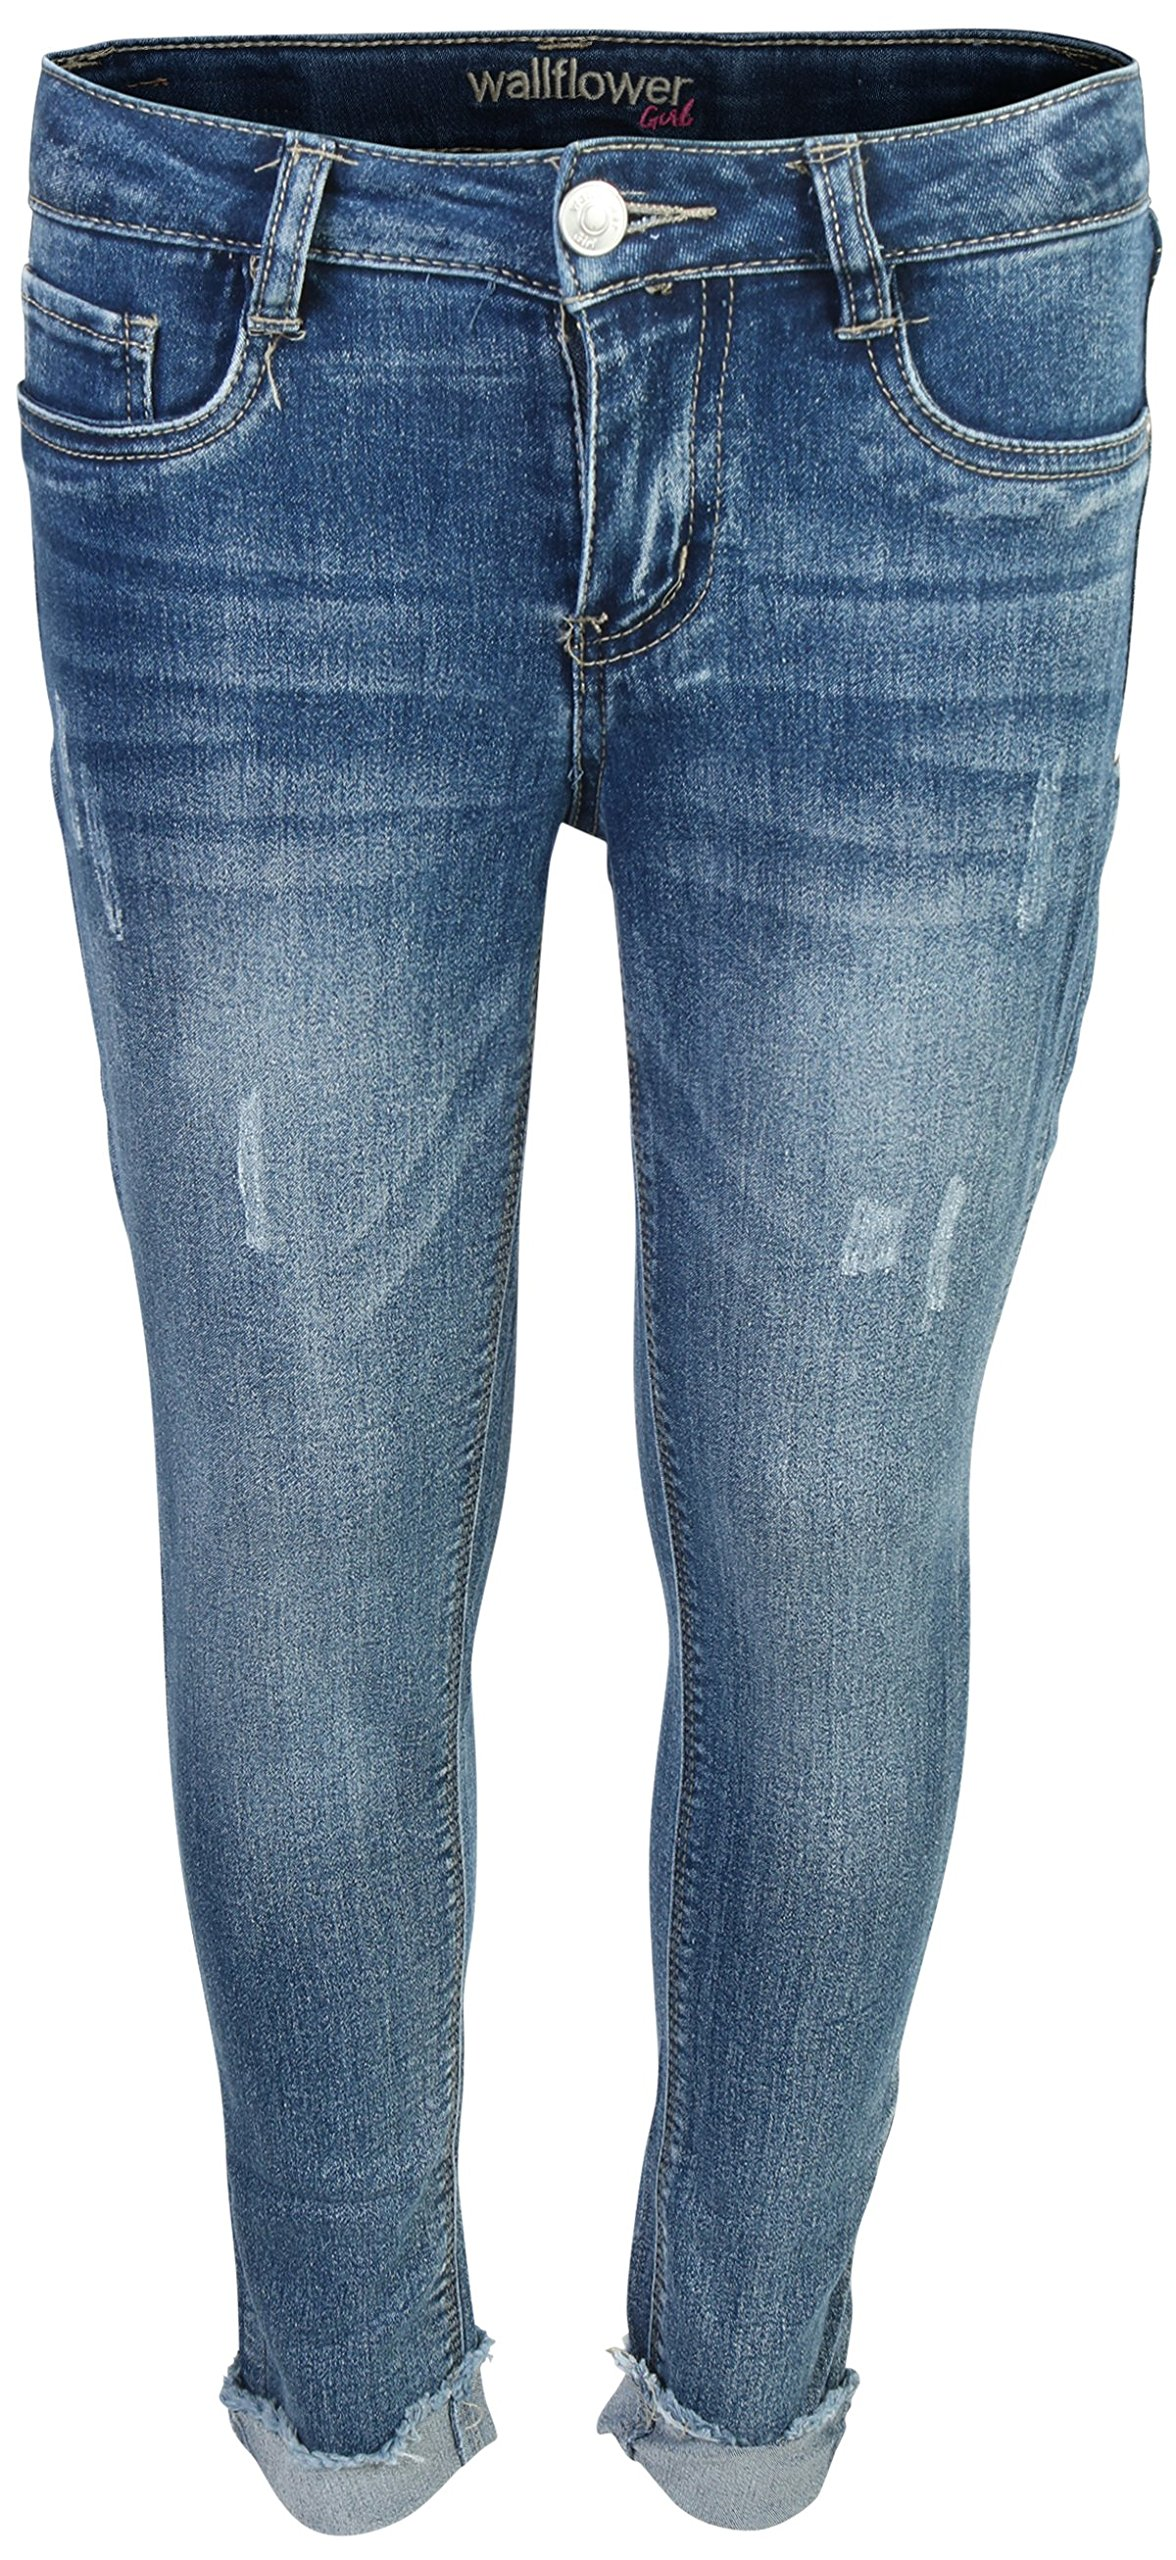 WallFlower Girl's Skinny Soft Stretch Fashion Cut Denim Jeans, Medium Wash w/Fray Cuff, Size 10